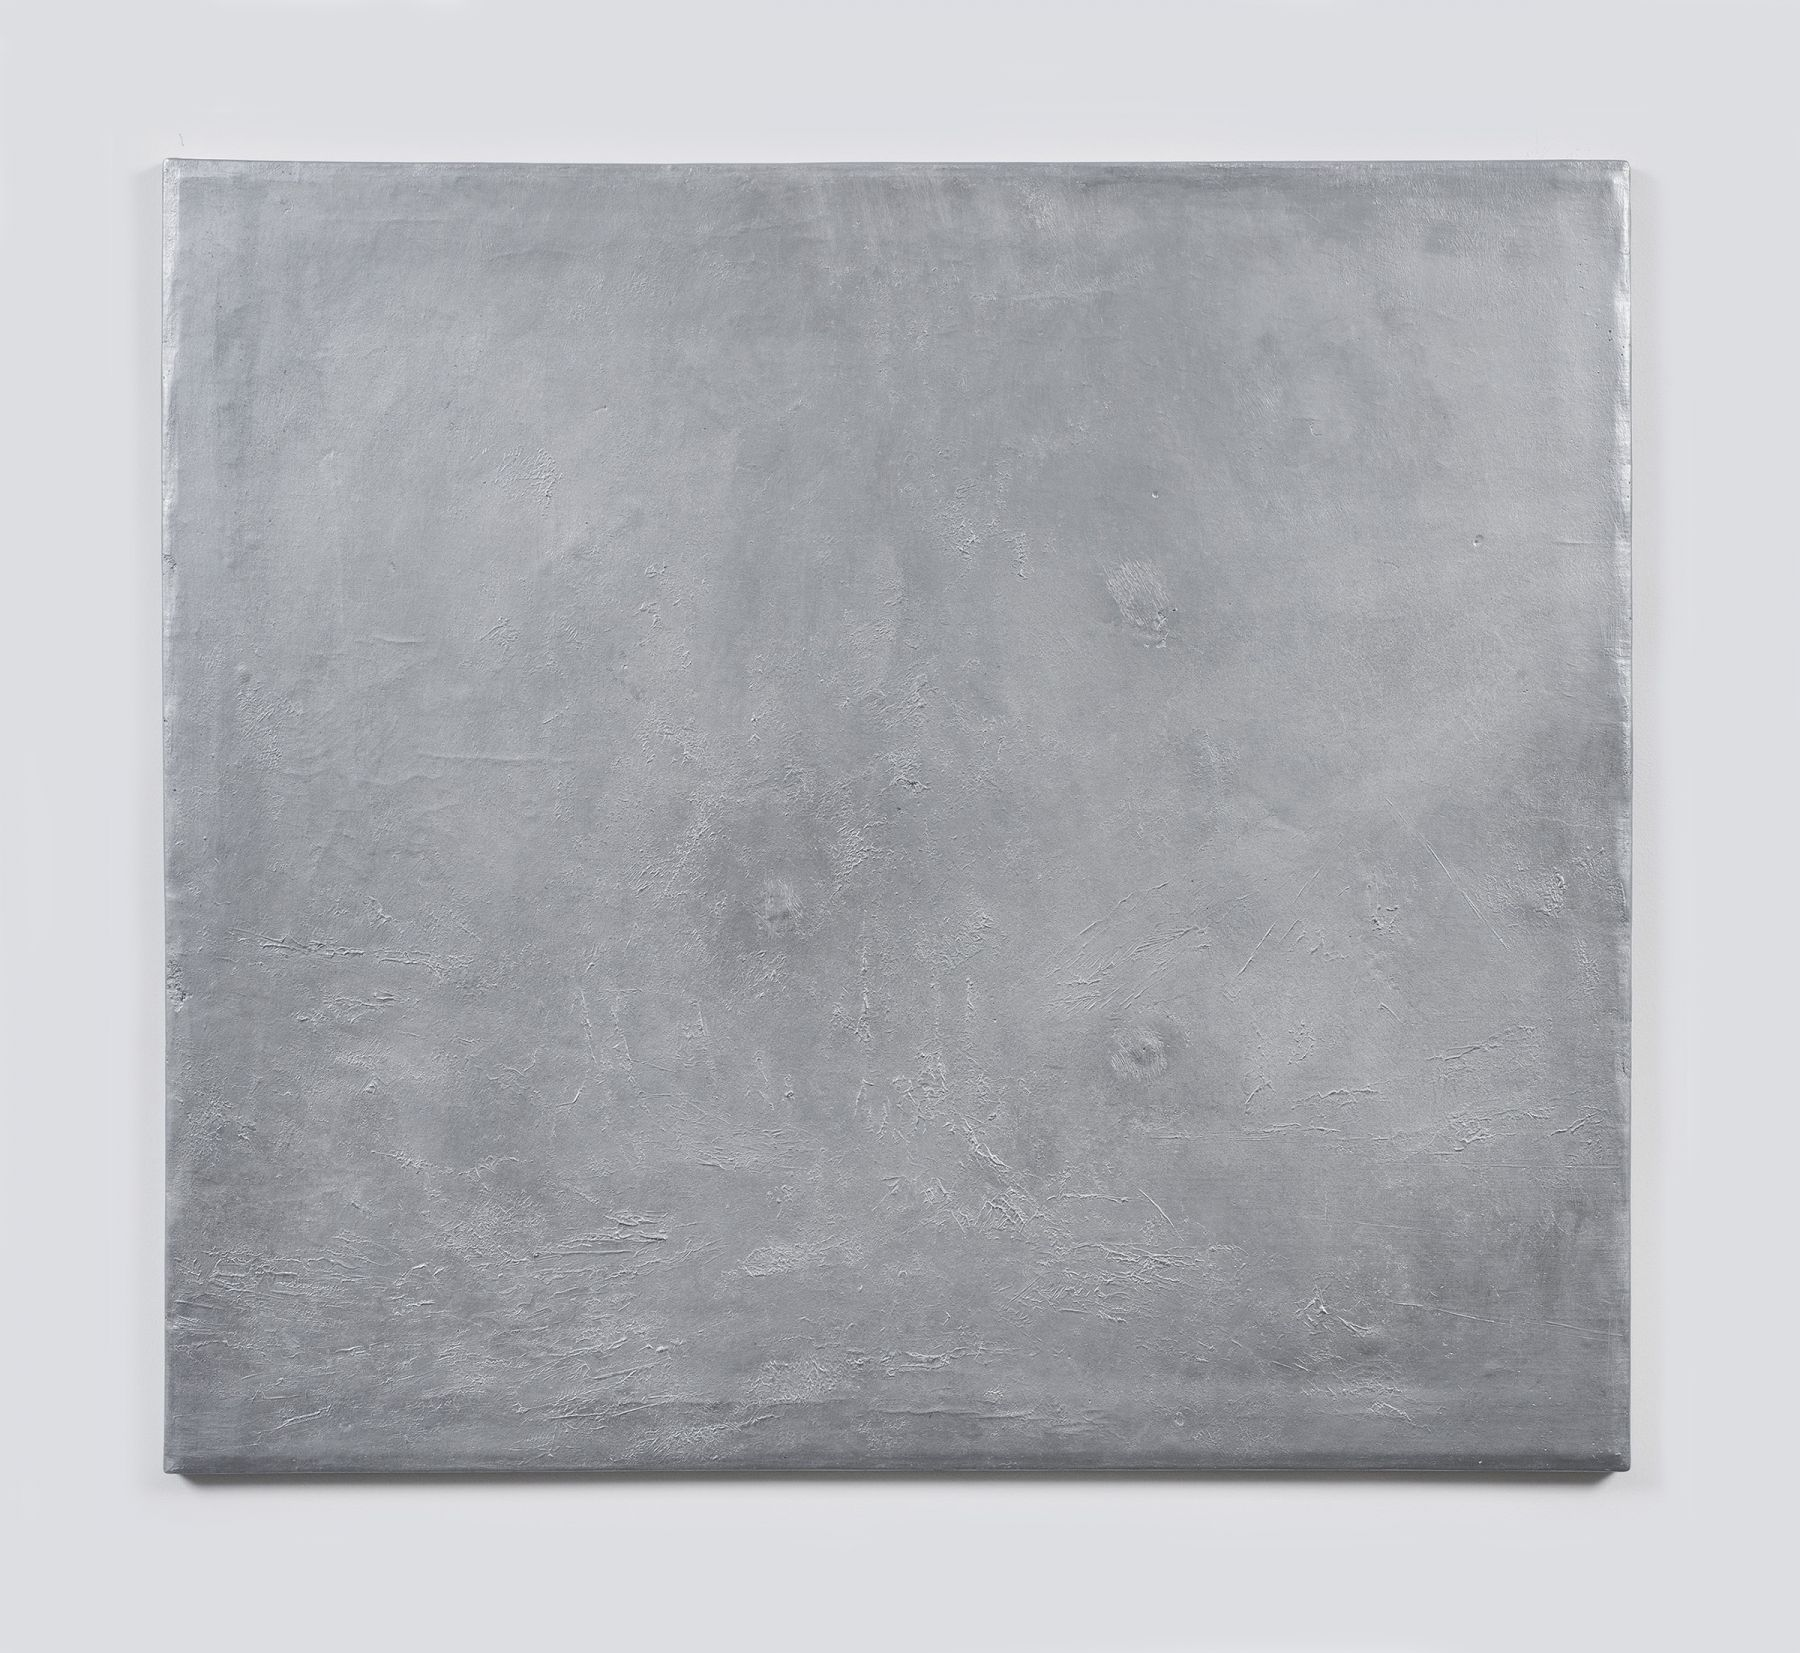 an aluminum artwork by Bjorn Braun available for sale